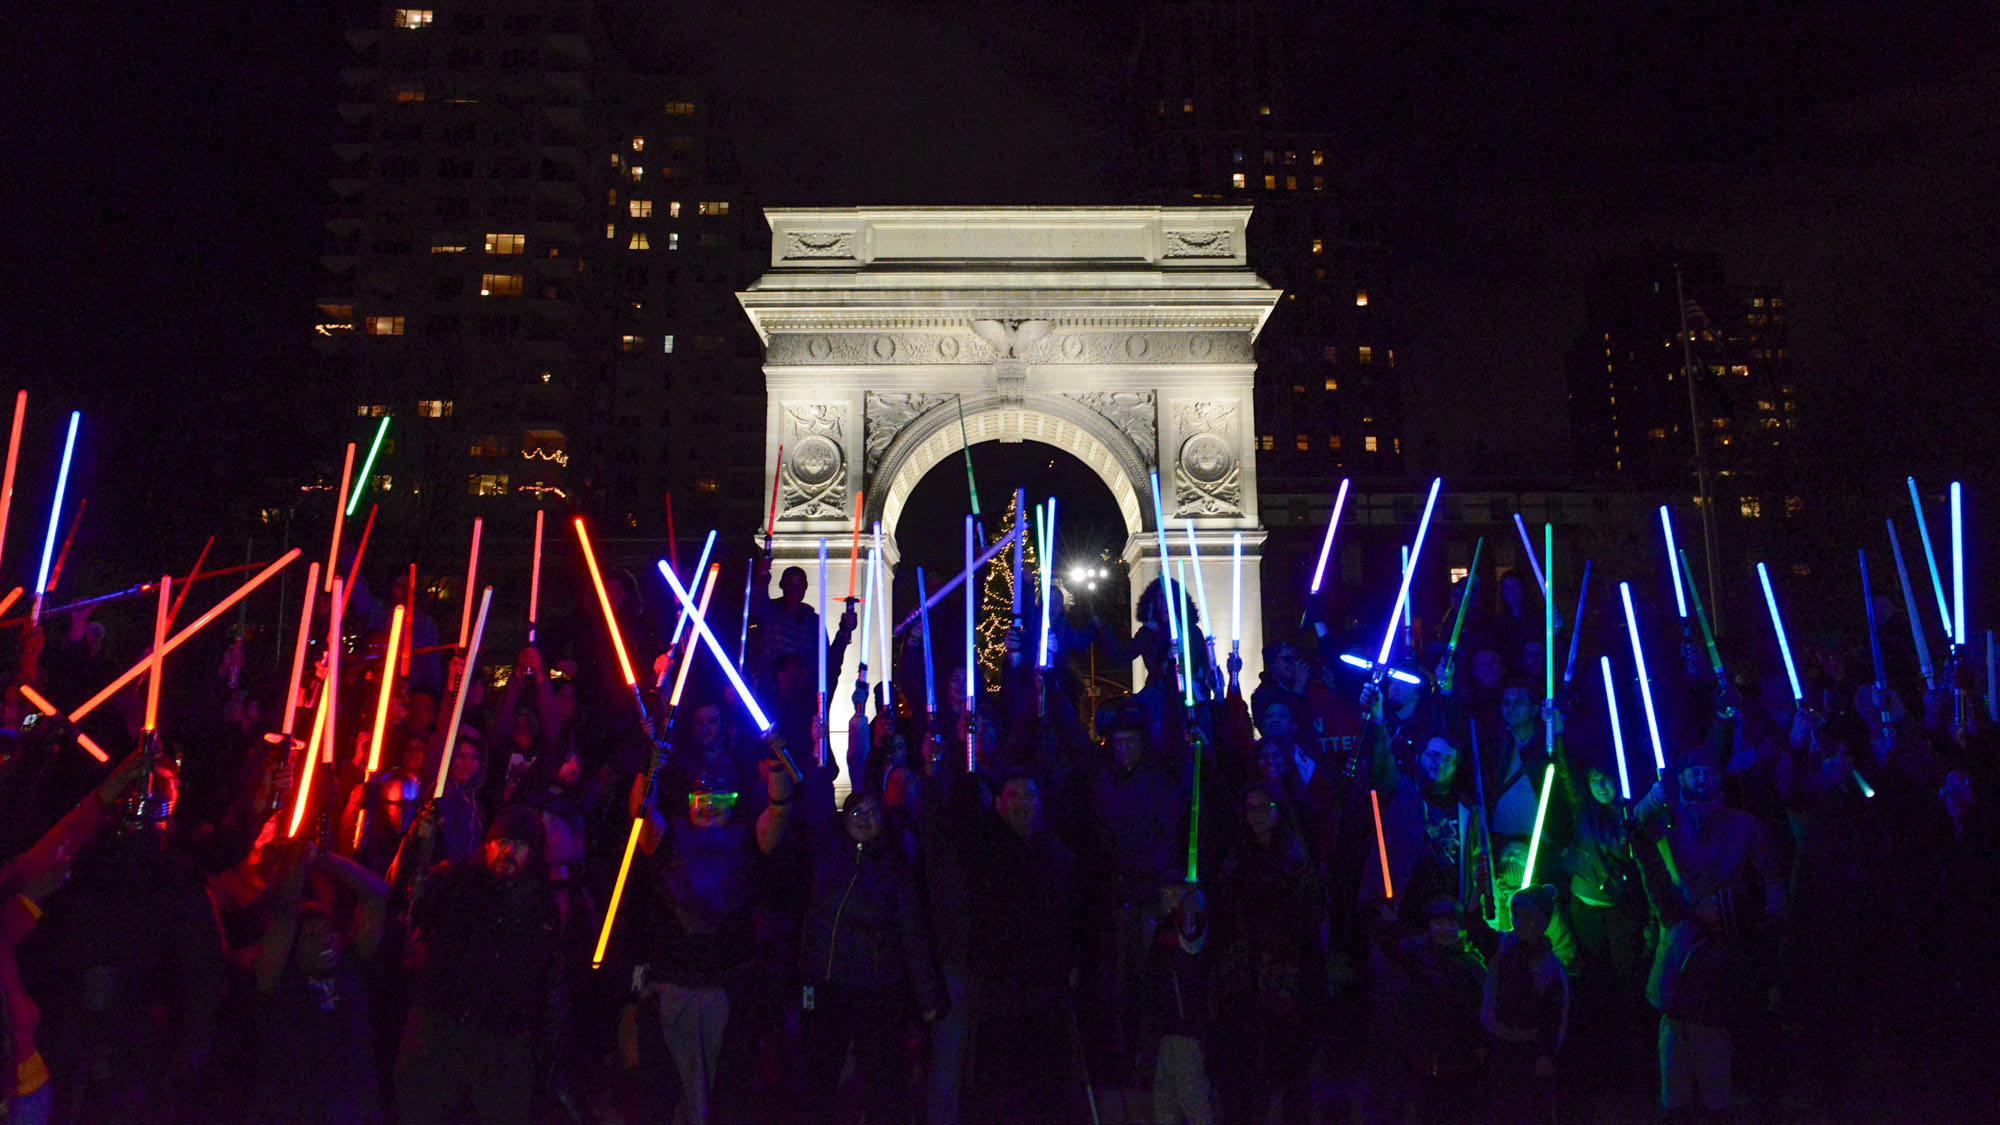 People participate in a Star Wars themed lightsaber battle in Washington Square Park in New York, December 18, 2015.